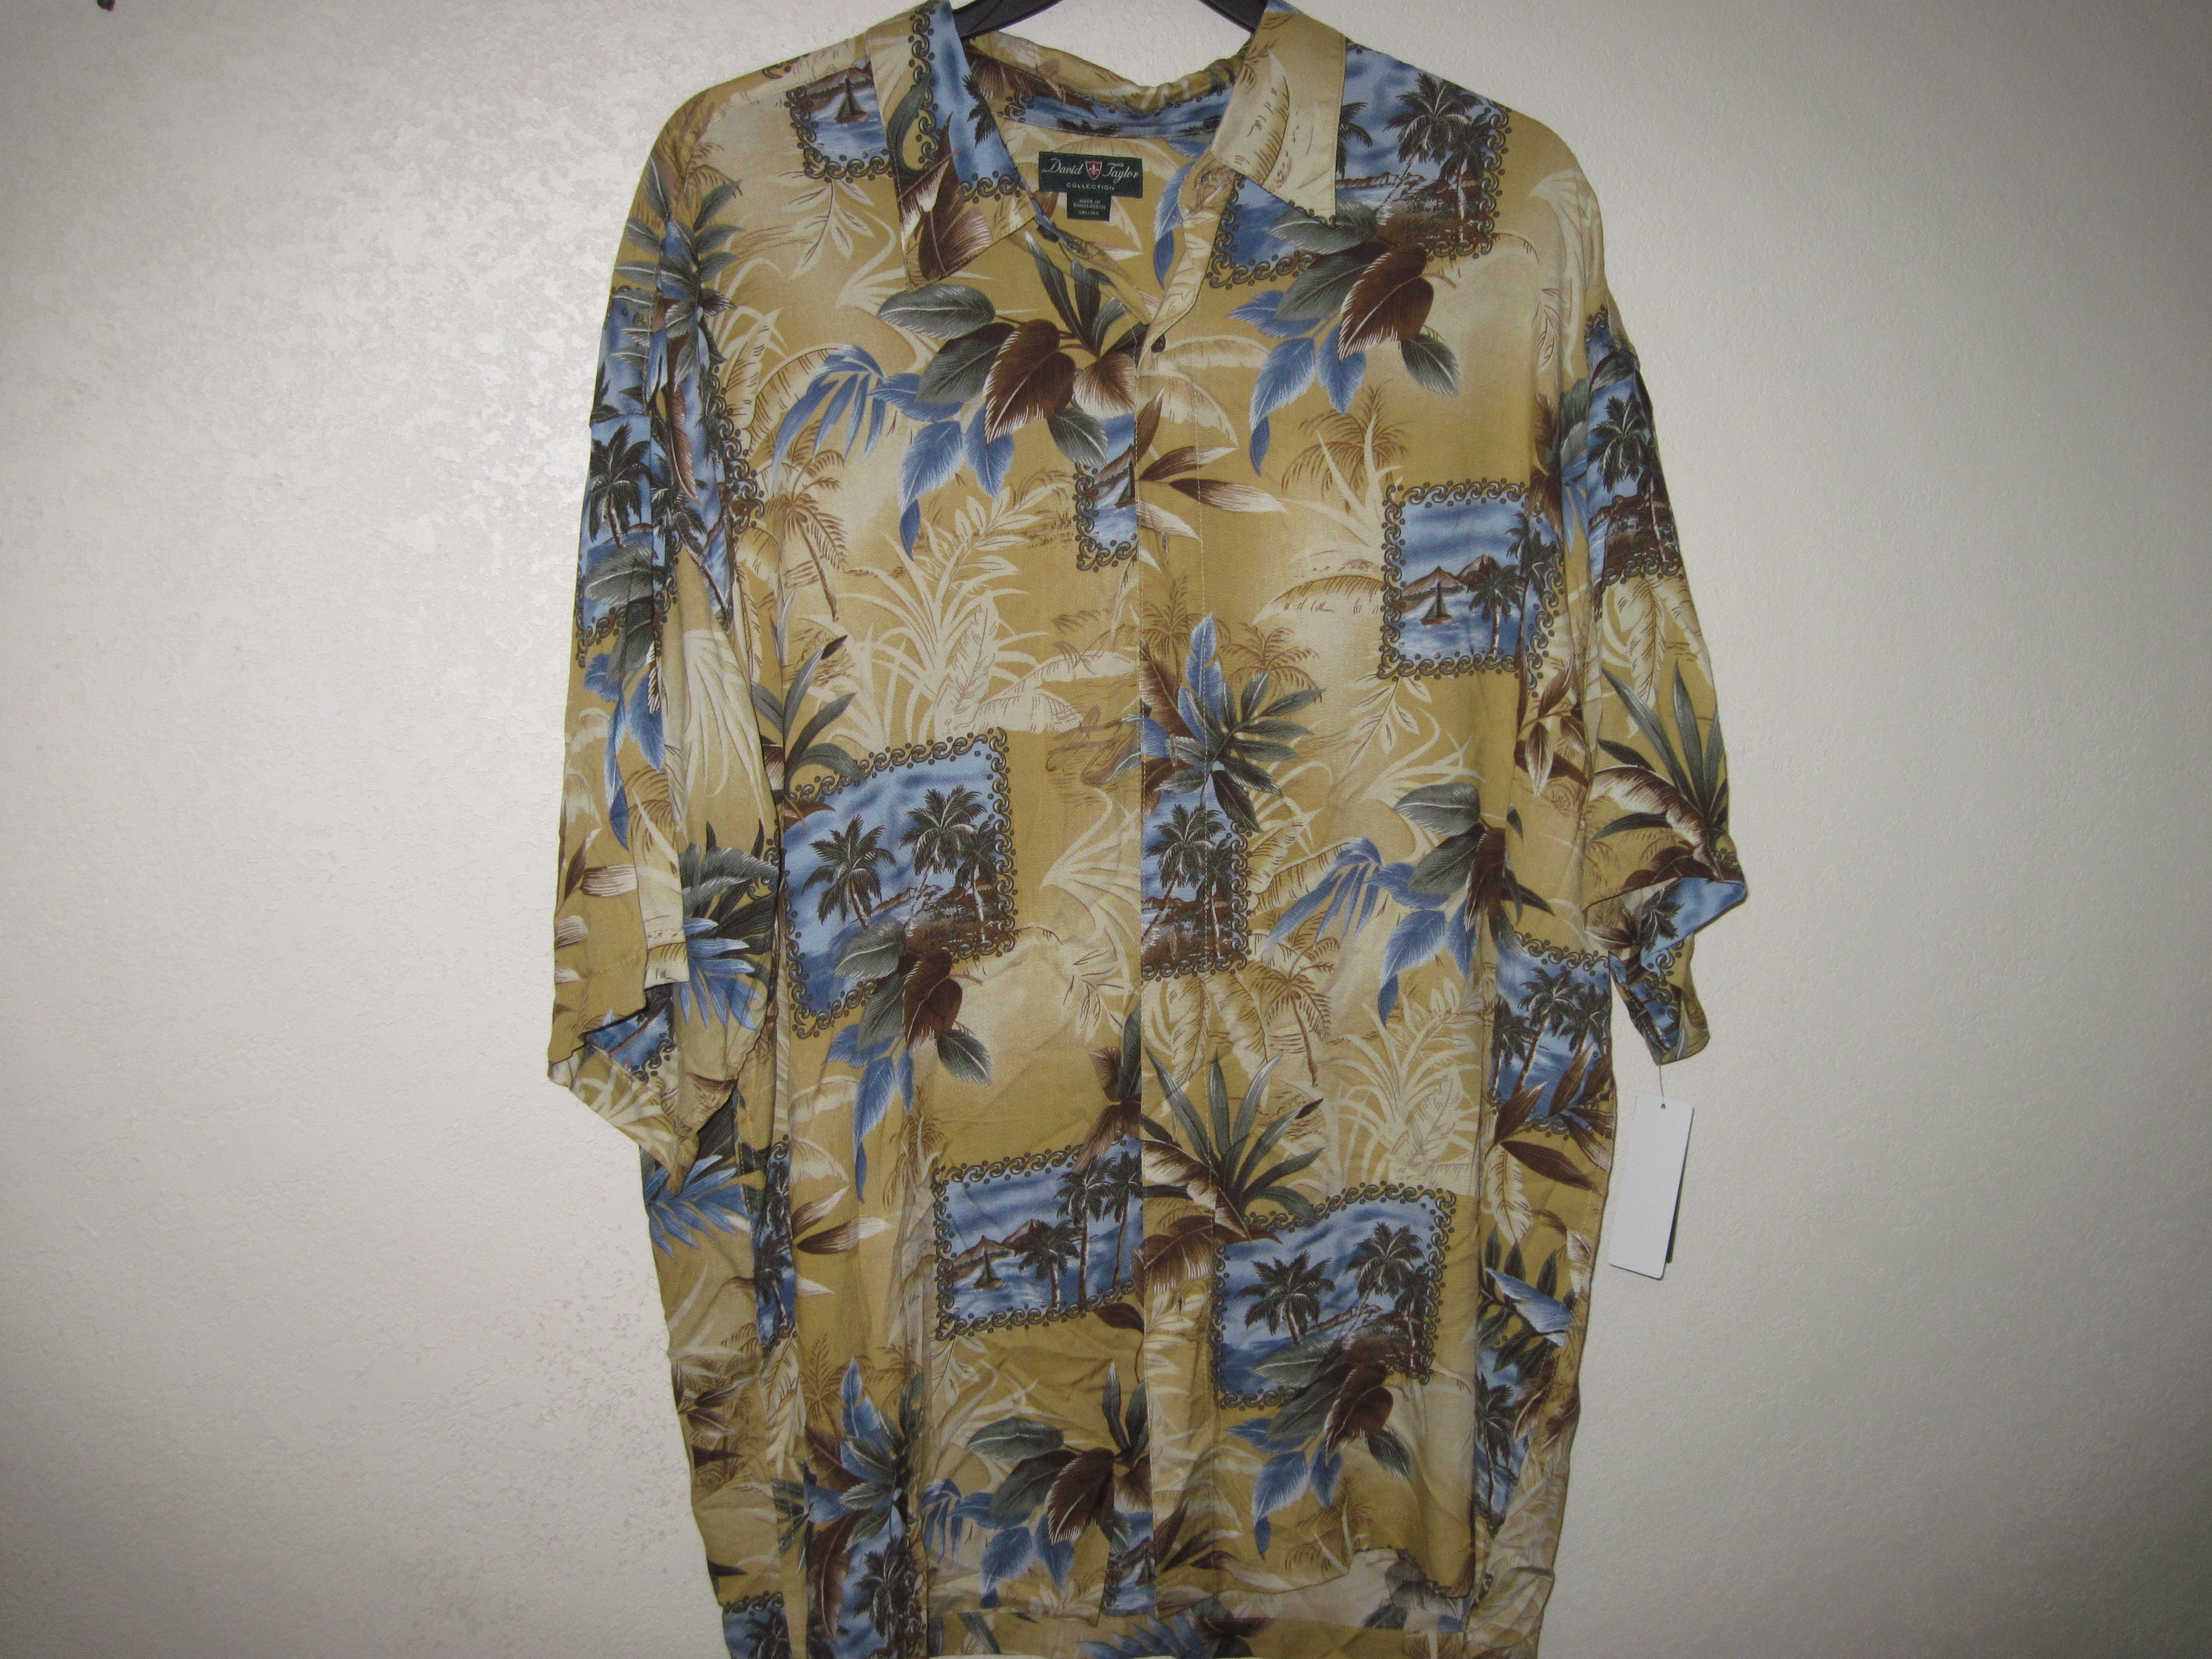 David Taylor Sz 2XL Mens Tropical Print Shirt Cream